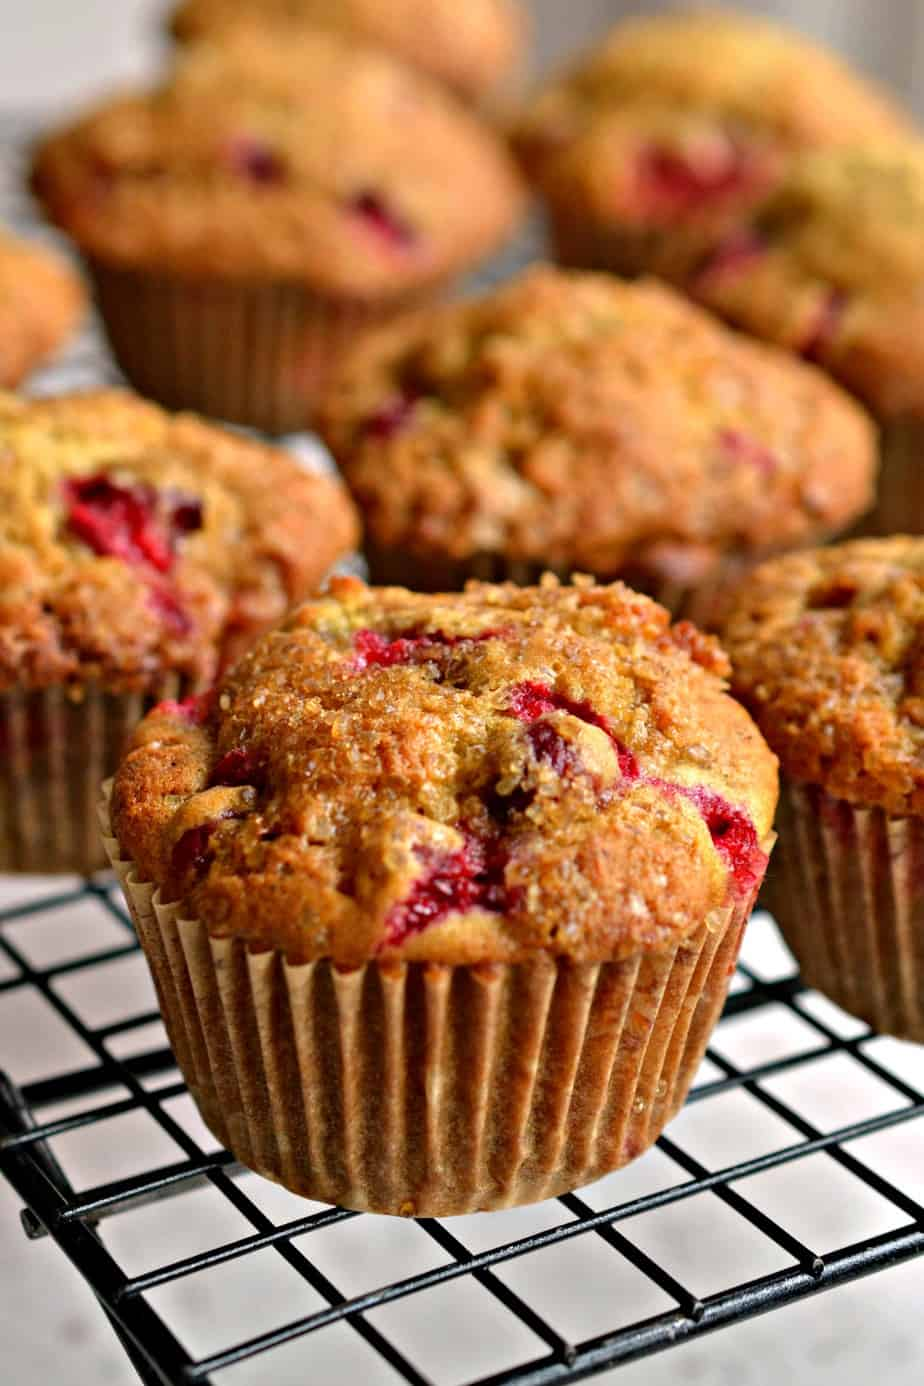 These Cranberry Orange muffins are the perfect companion for your morning coffee.